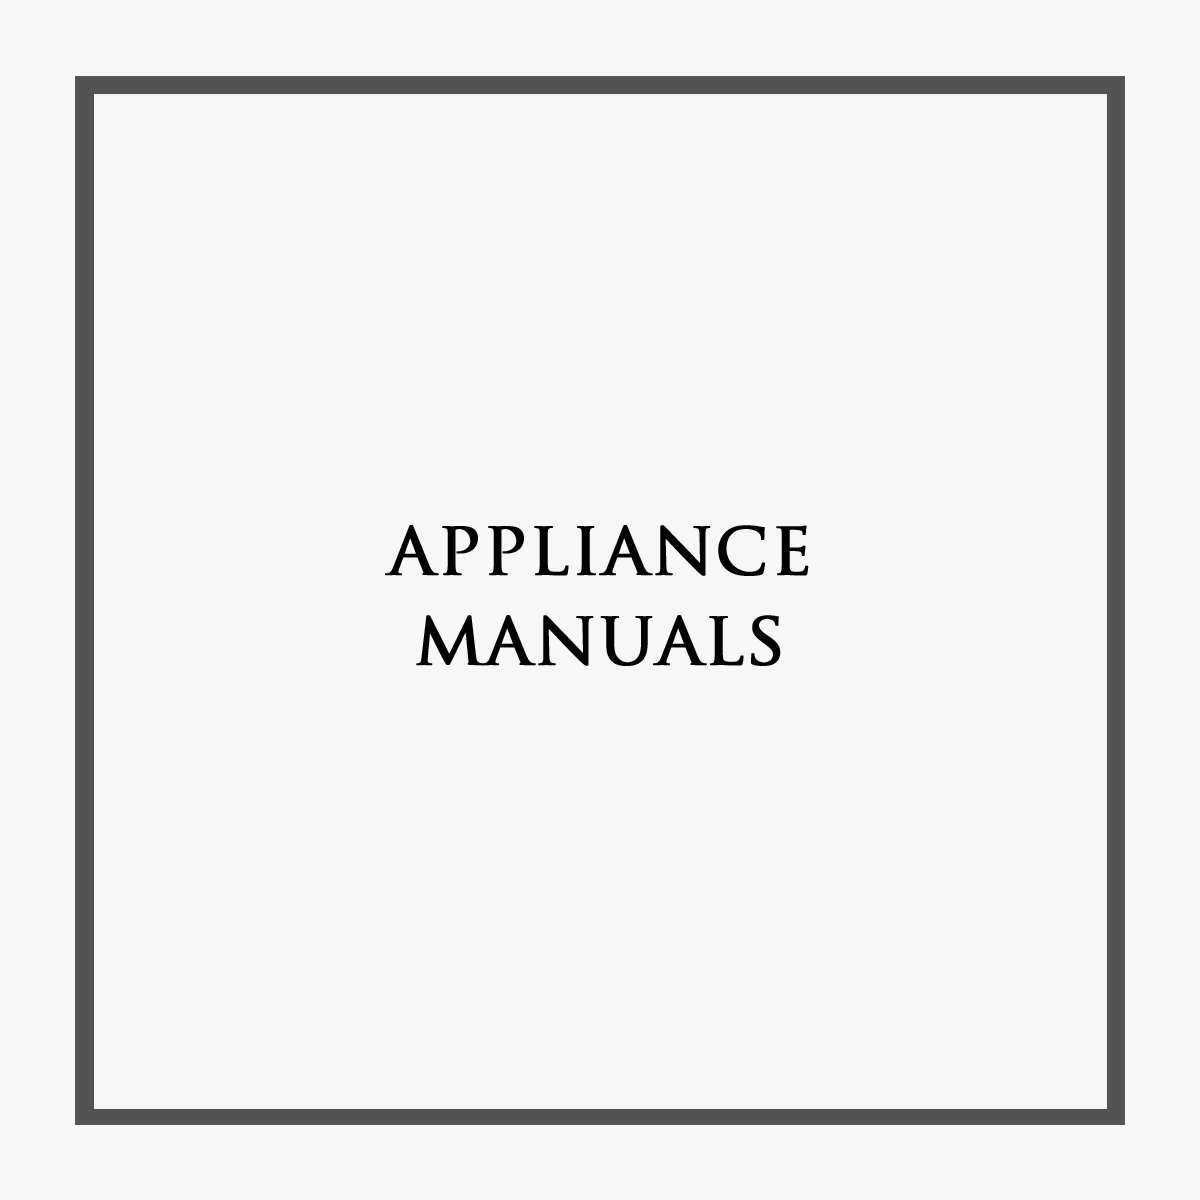 Castle Rock Appliance Manuals